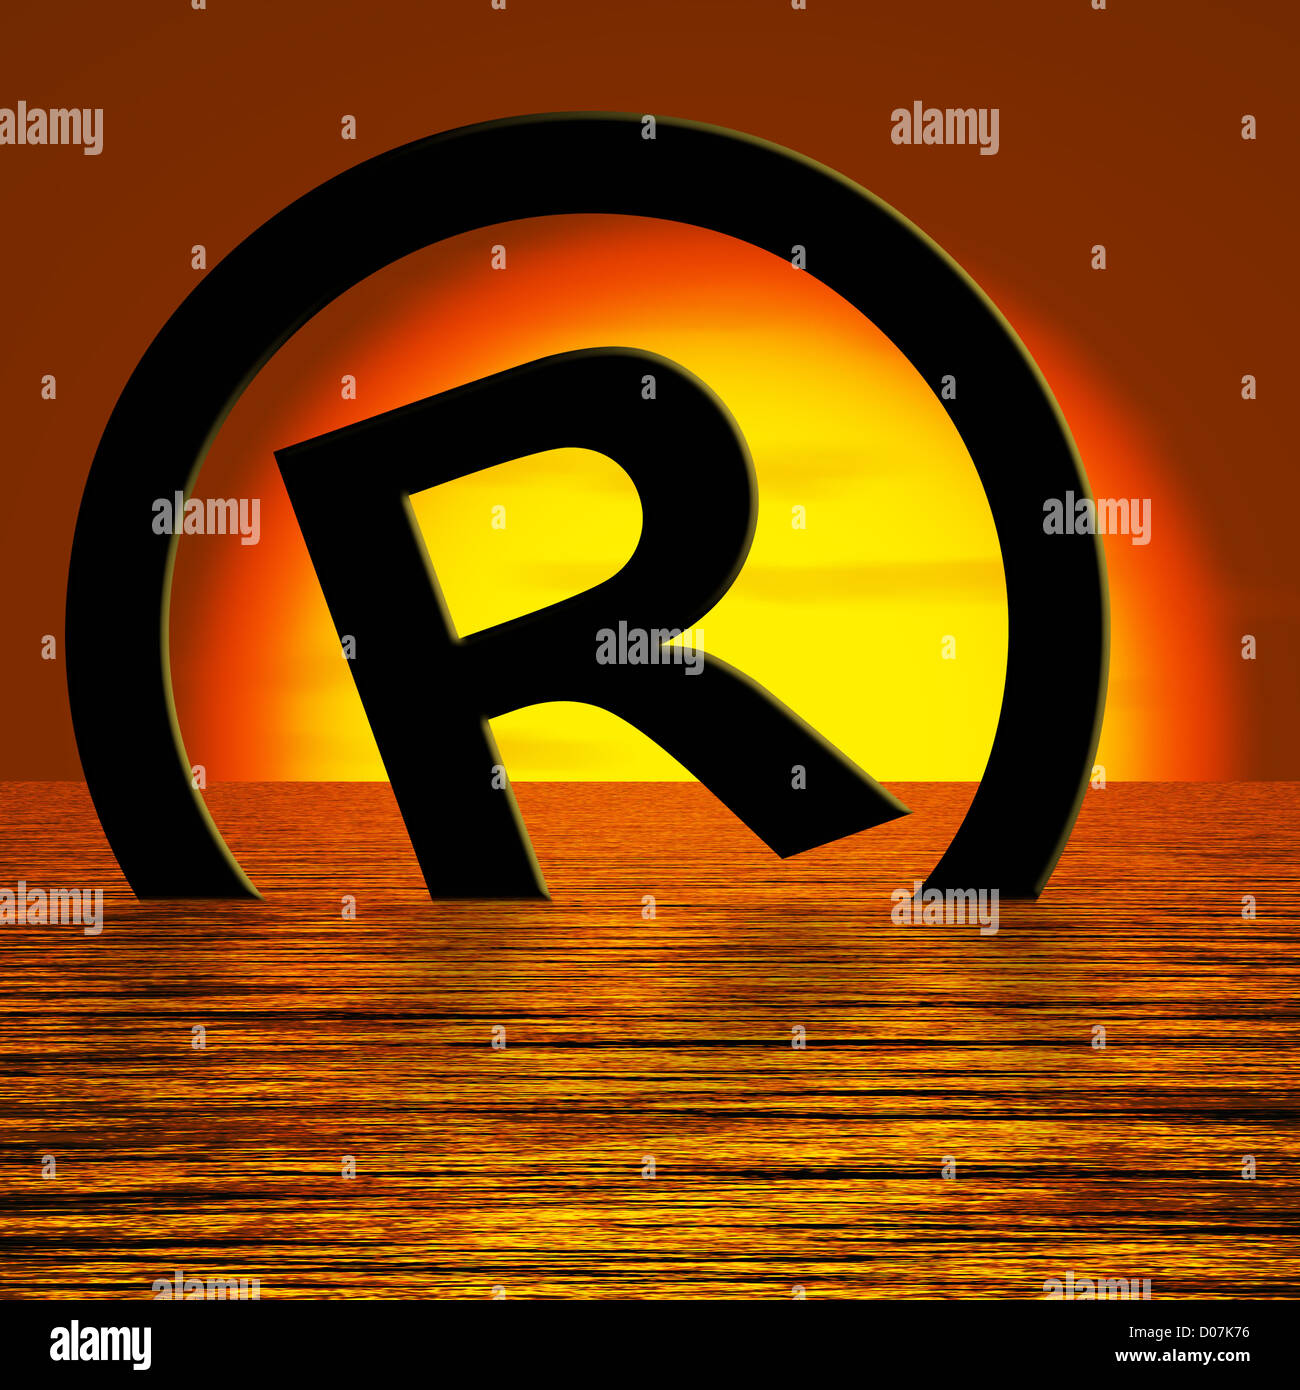 Registered Symbol Sinking Meaning Piracy Or Infringements Stock Photo